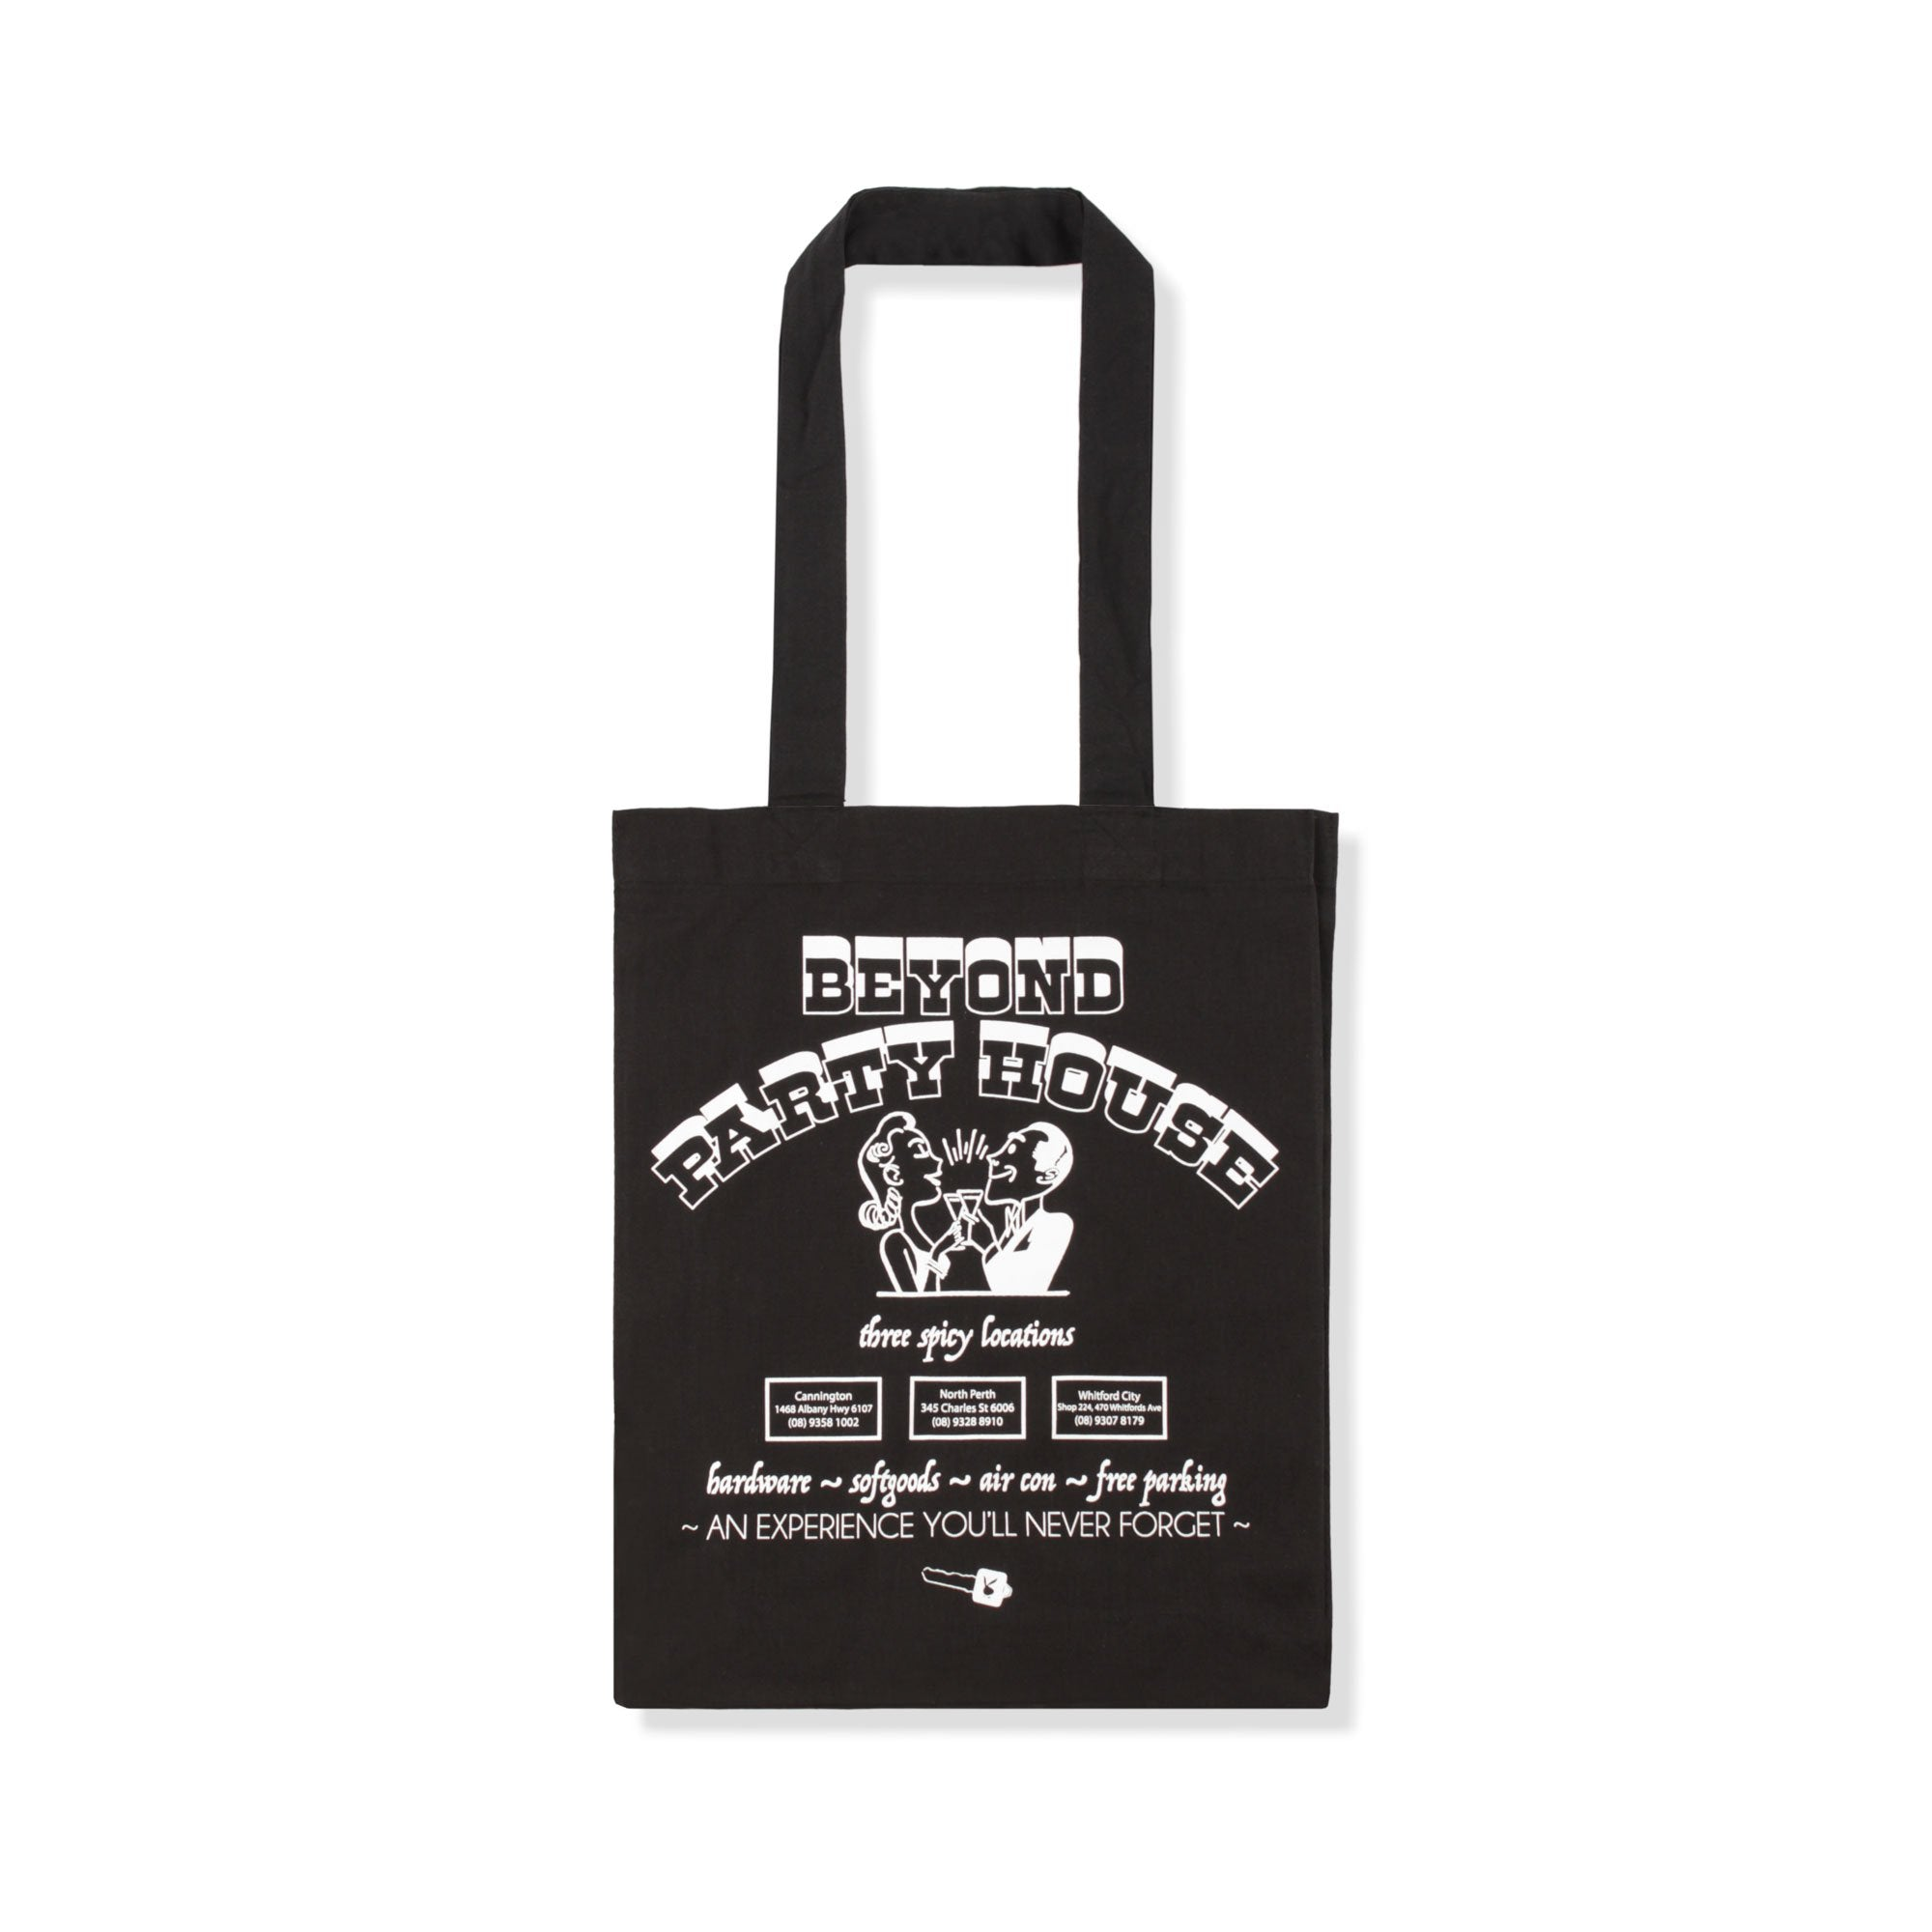 Beyond Party House Tote Bag Product Photo #1